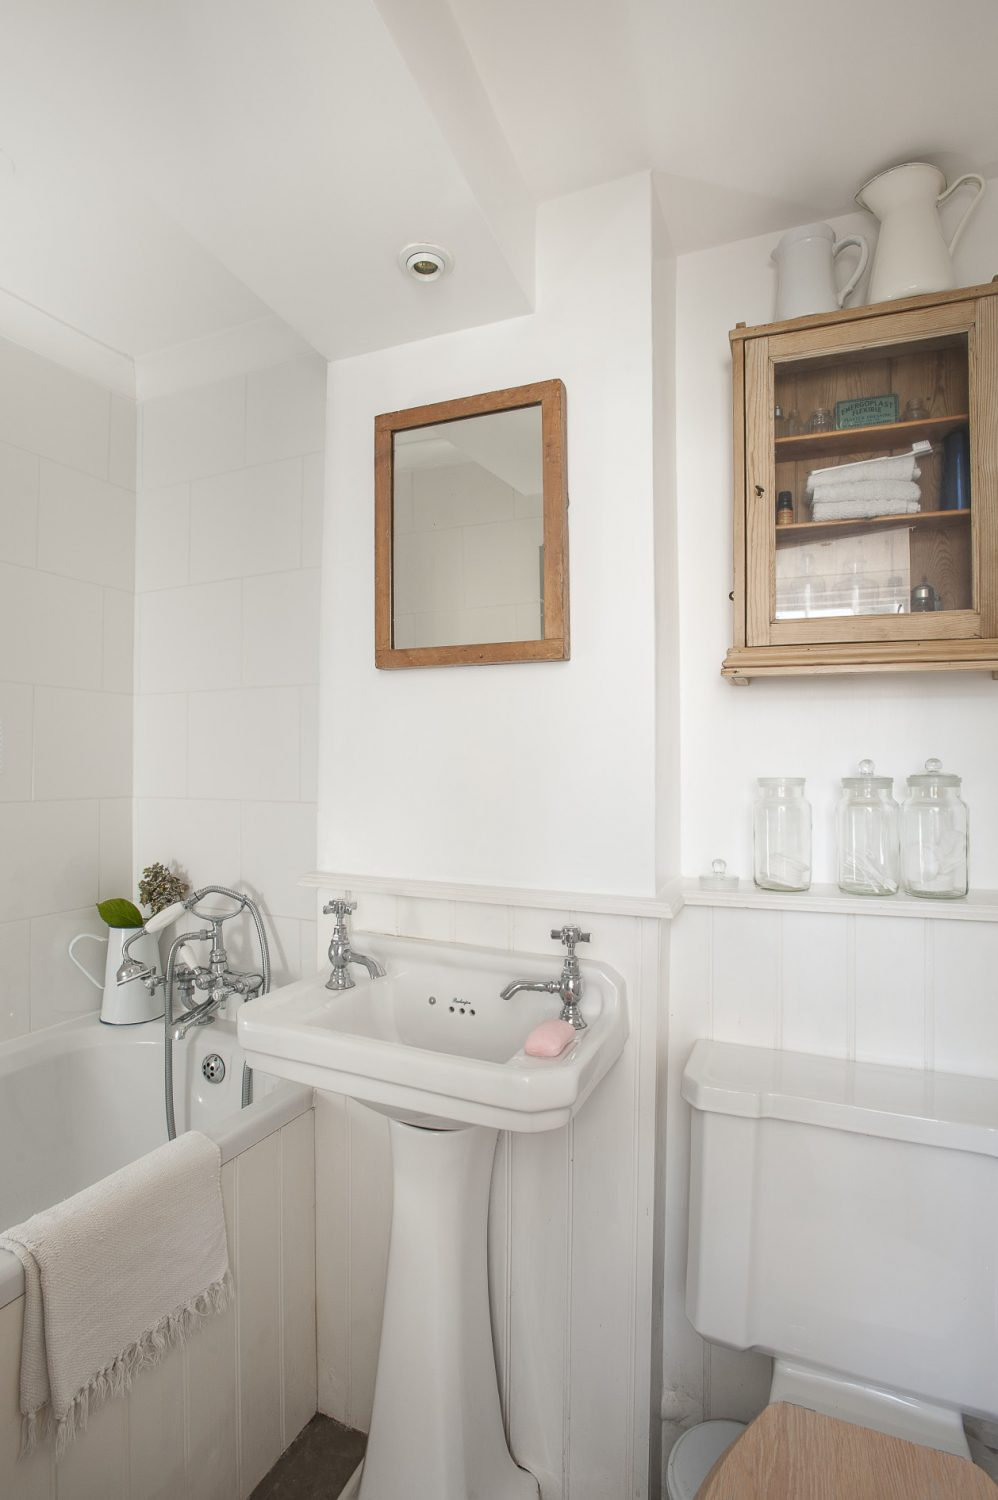 For the bathroom, off the kitchen, Linda has sourced a dinky little bath which does the job perfectly, fitting neatly into the space available